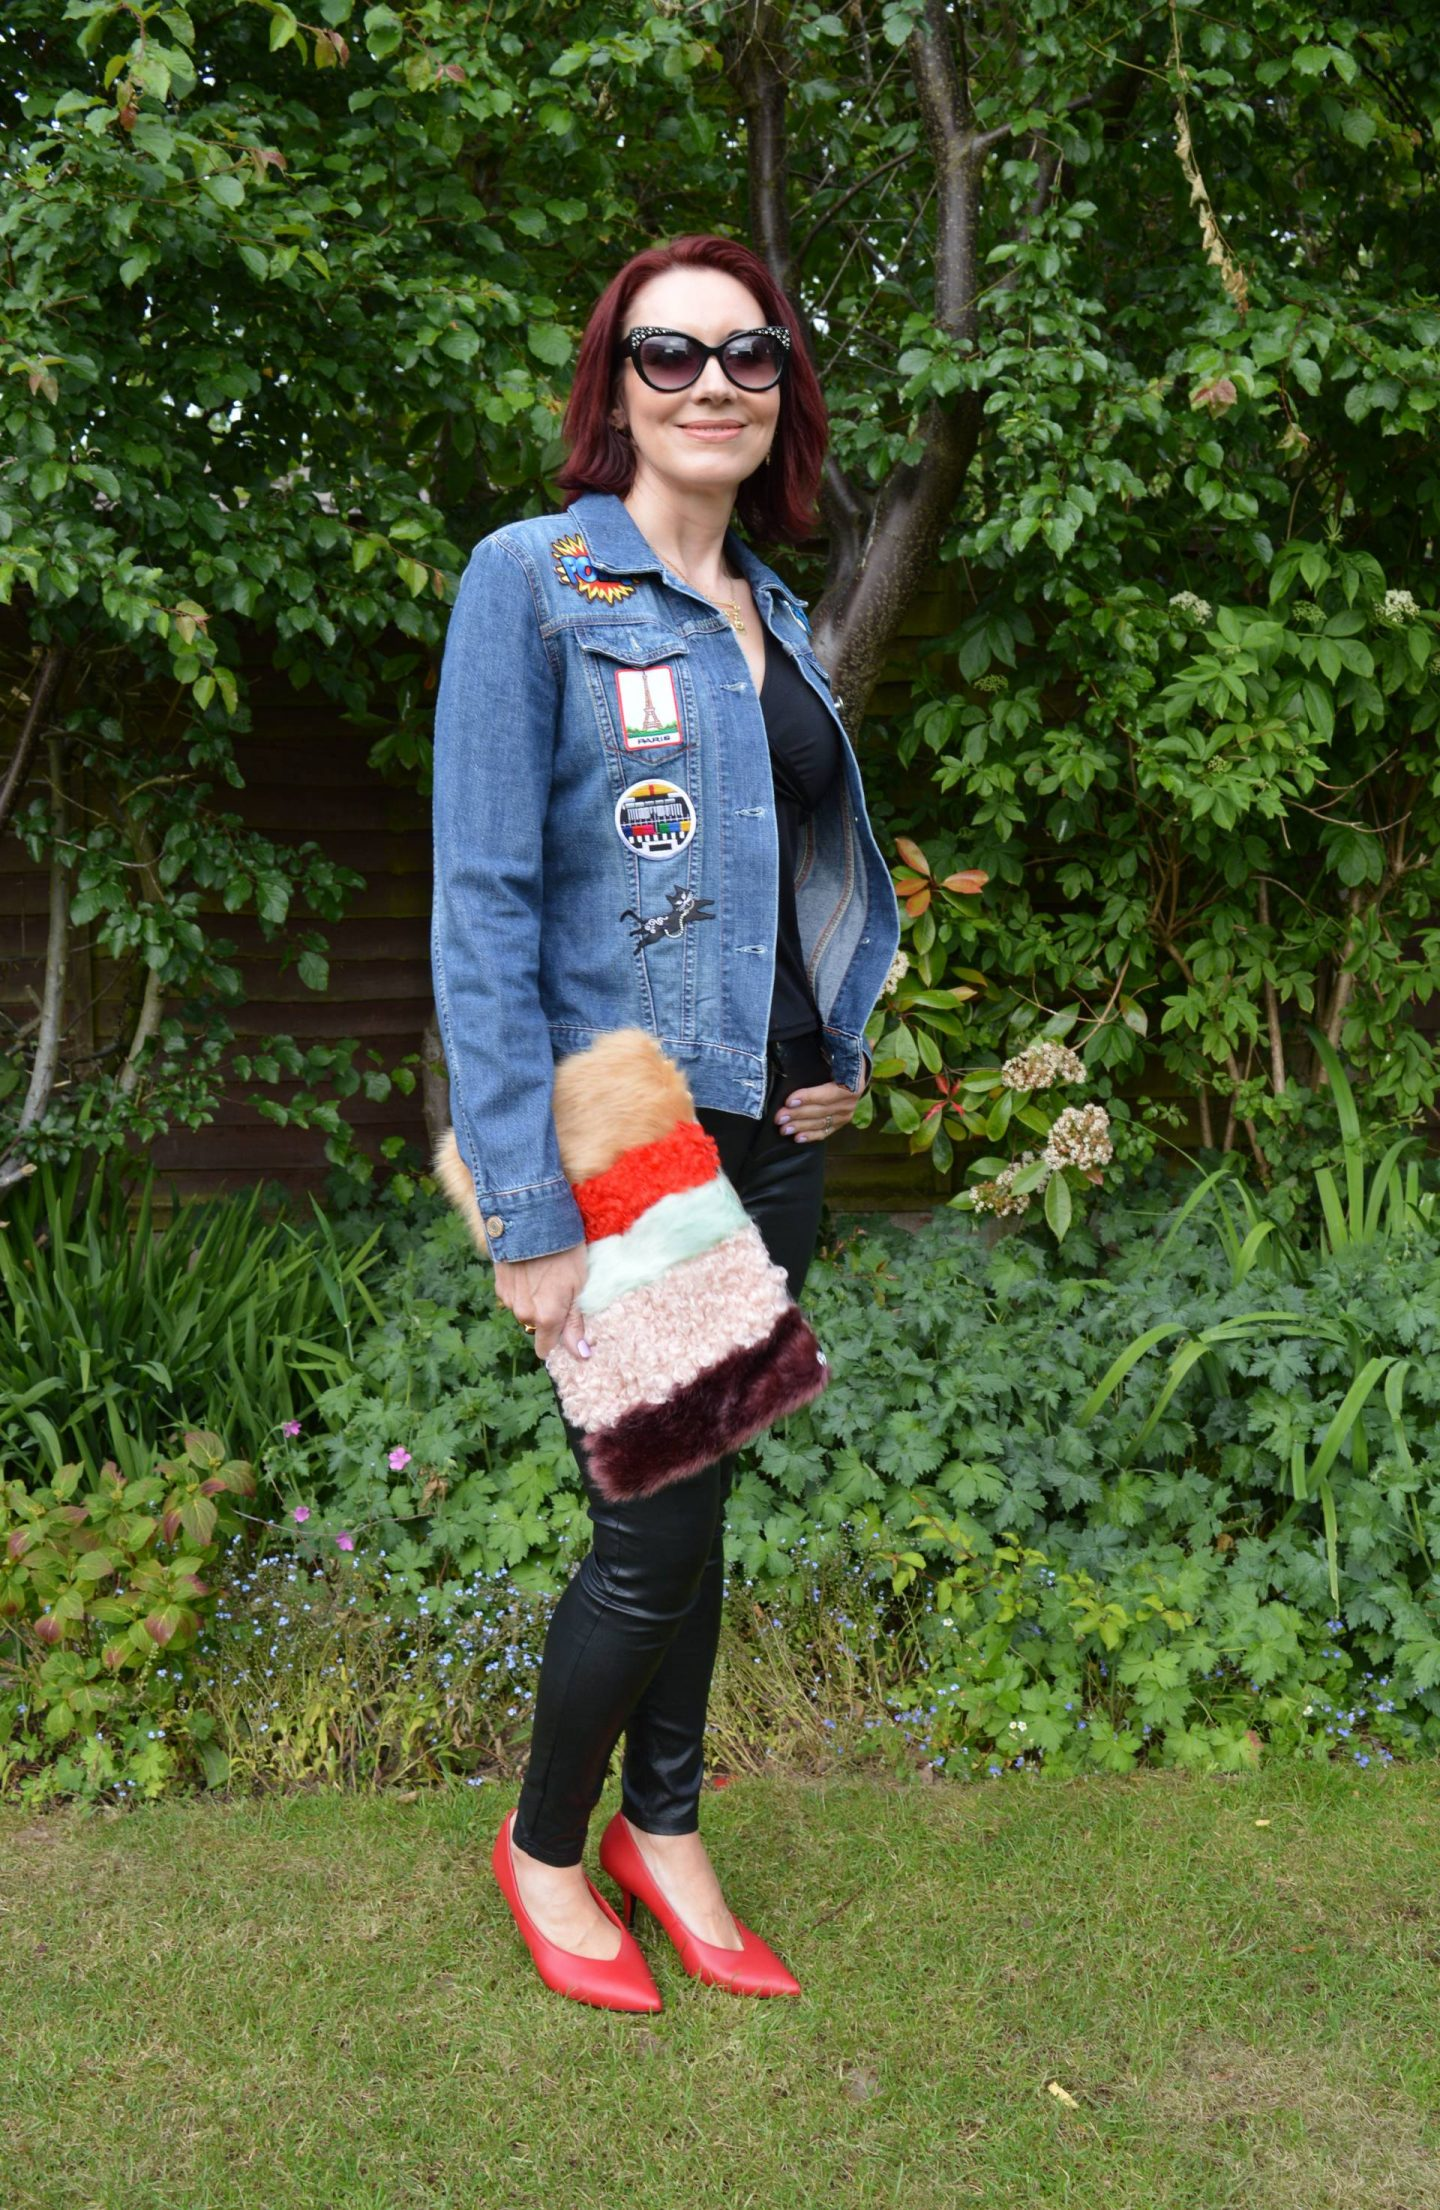 Style Not Age Recycled Fashion, DIY upcycled denim jacket